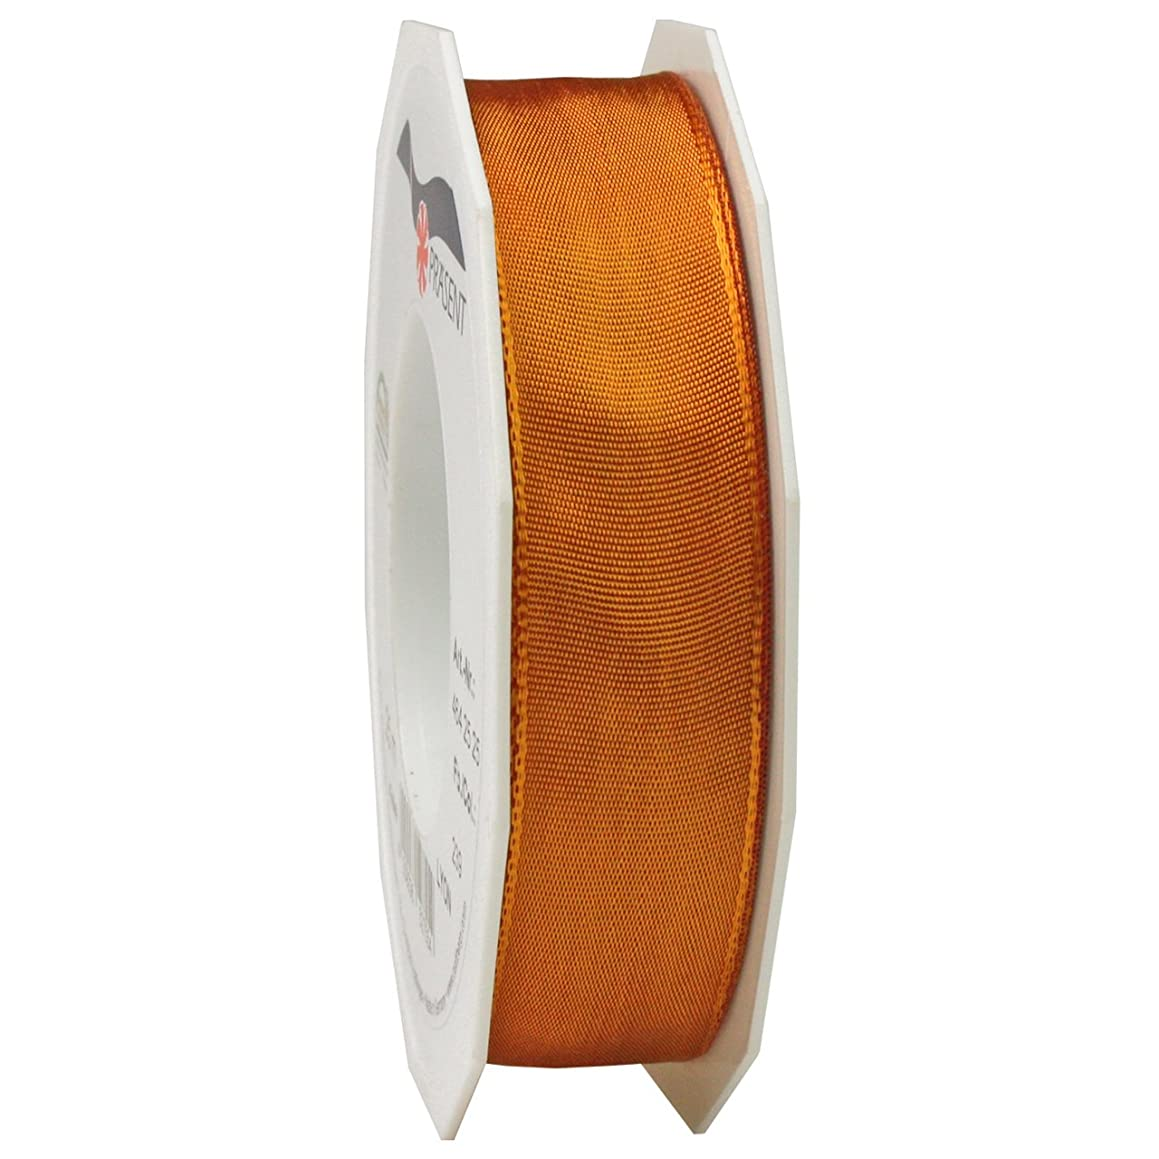 Morex Ribbon French Wired Lyon Ribbon, 1-Inch by 27-Yard Spool, Pumpkin